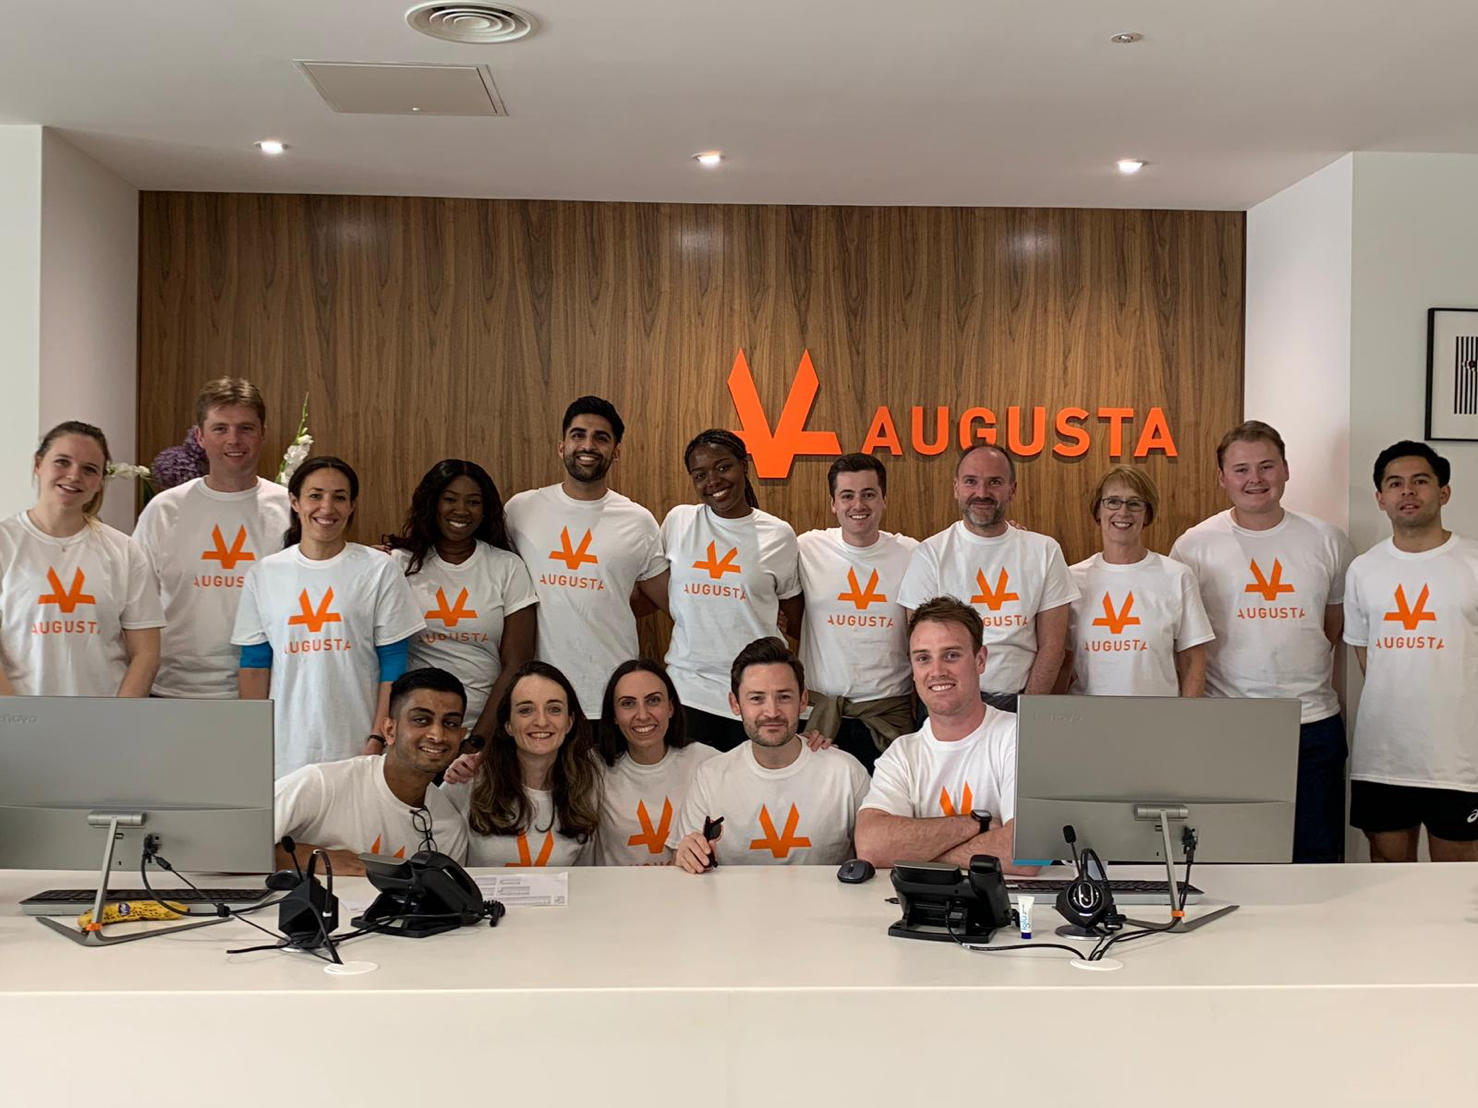 Group photo of 16 members of the Augusta staff lined up in Augusta London office with the orange Augusta Logo in the background smiling and posing for picture with the same Augusta branded T-Shirt